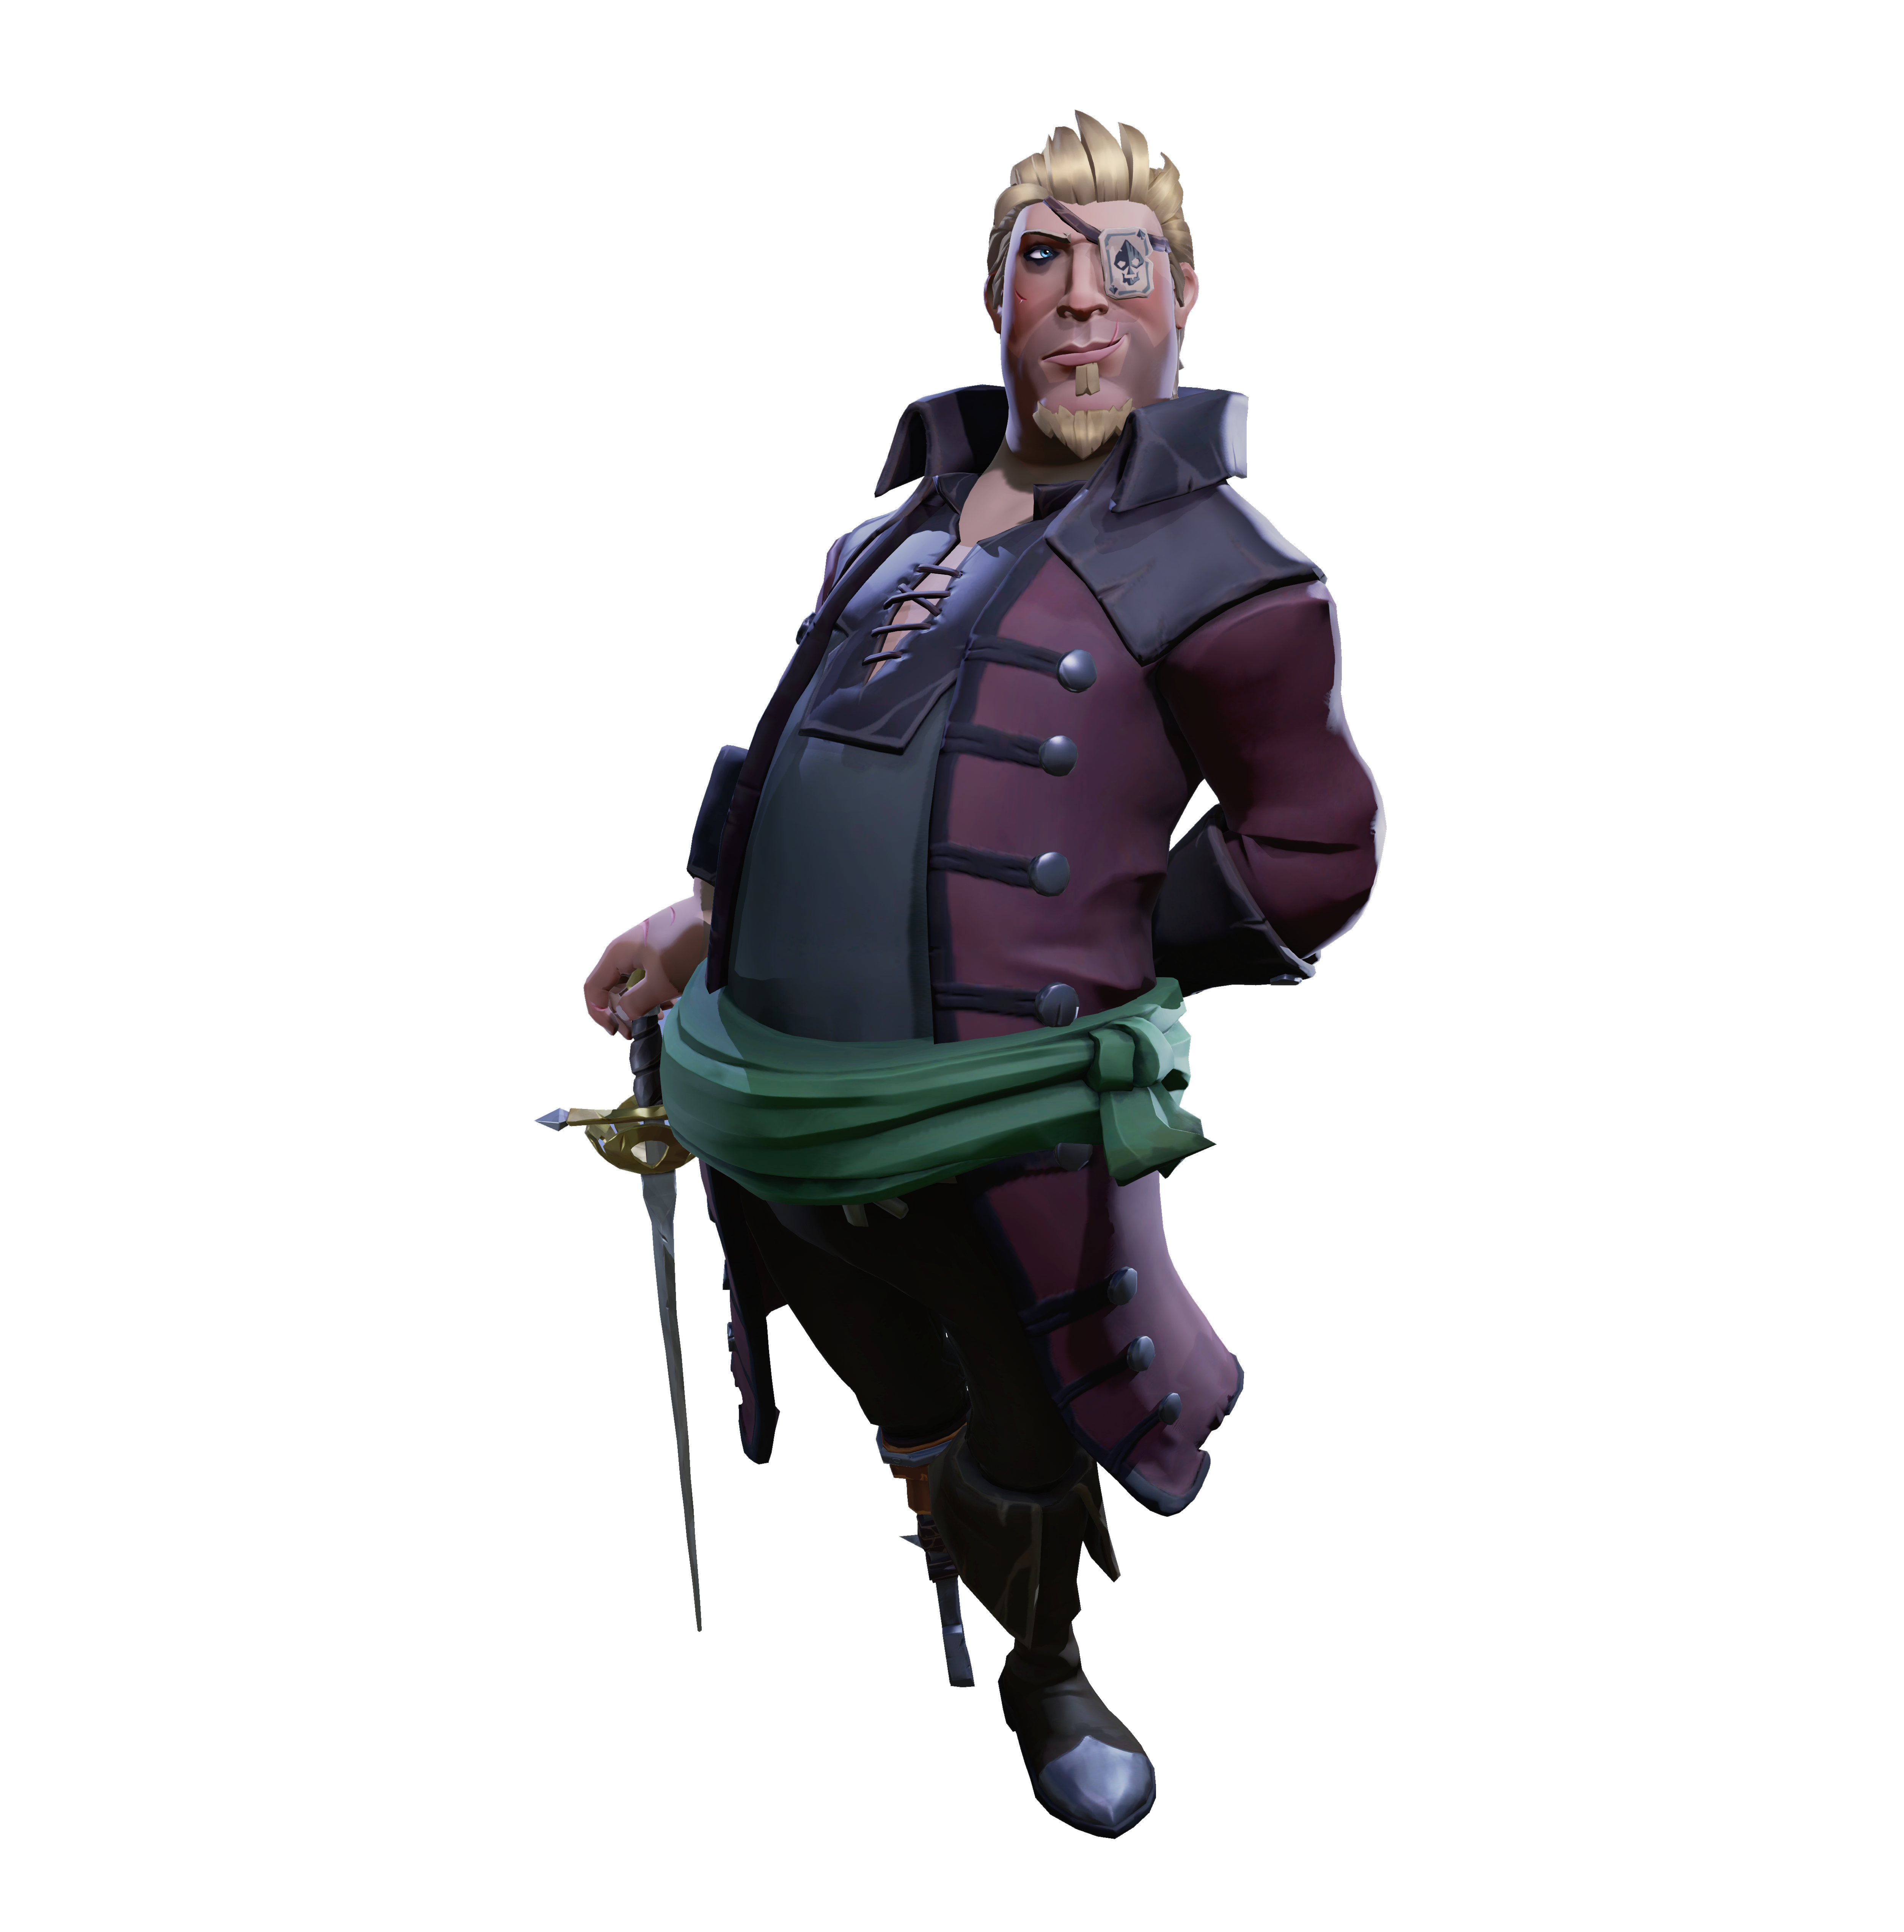 Sea of Thieves Pirate